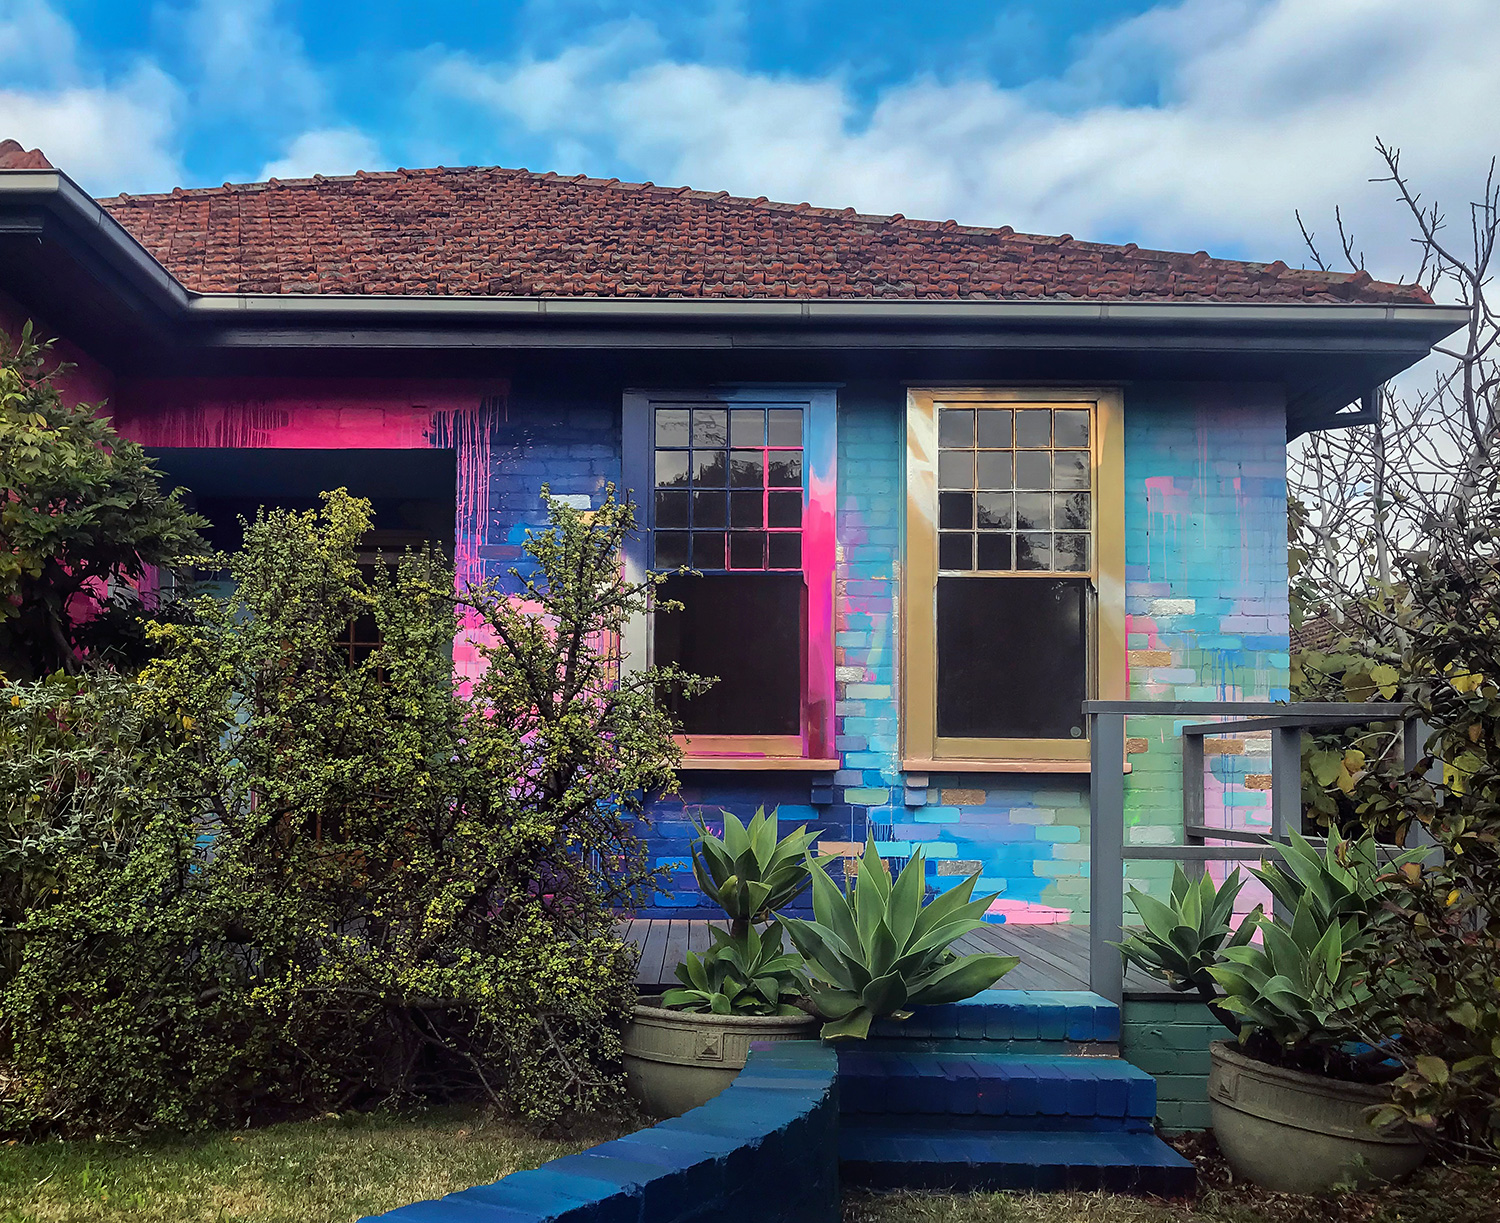 Vibrant abstract mural painted on the exterior of a house. The colors contrast with the traditional architecture of the house and surrounding natural elements.